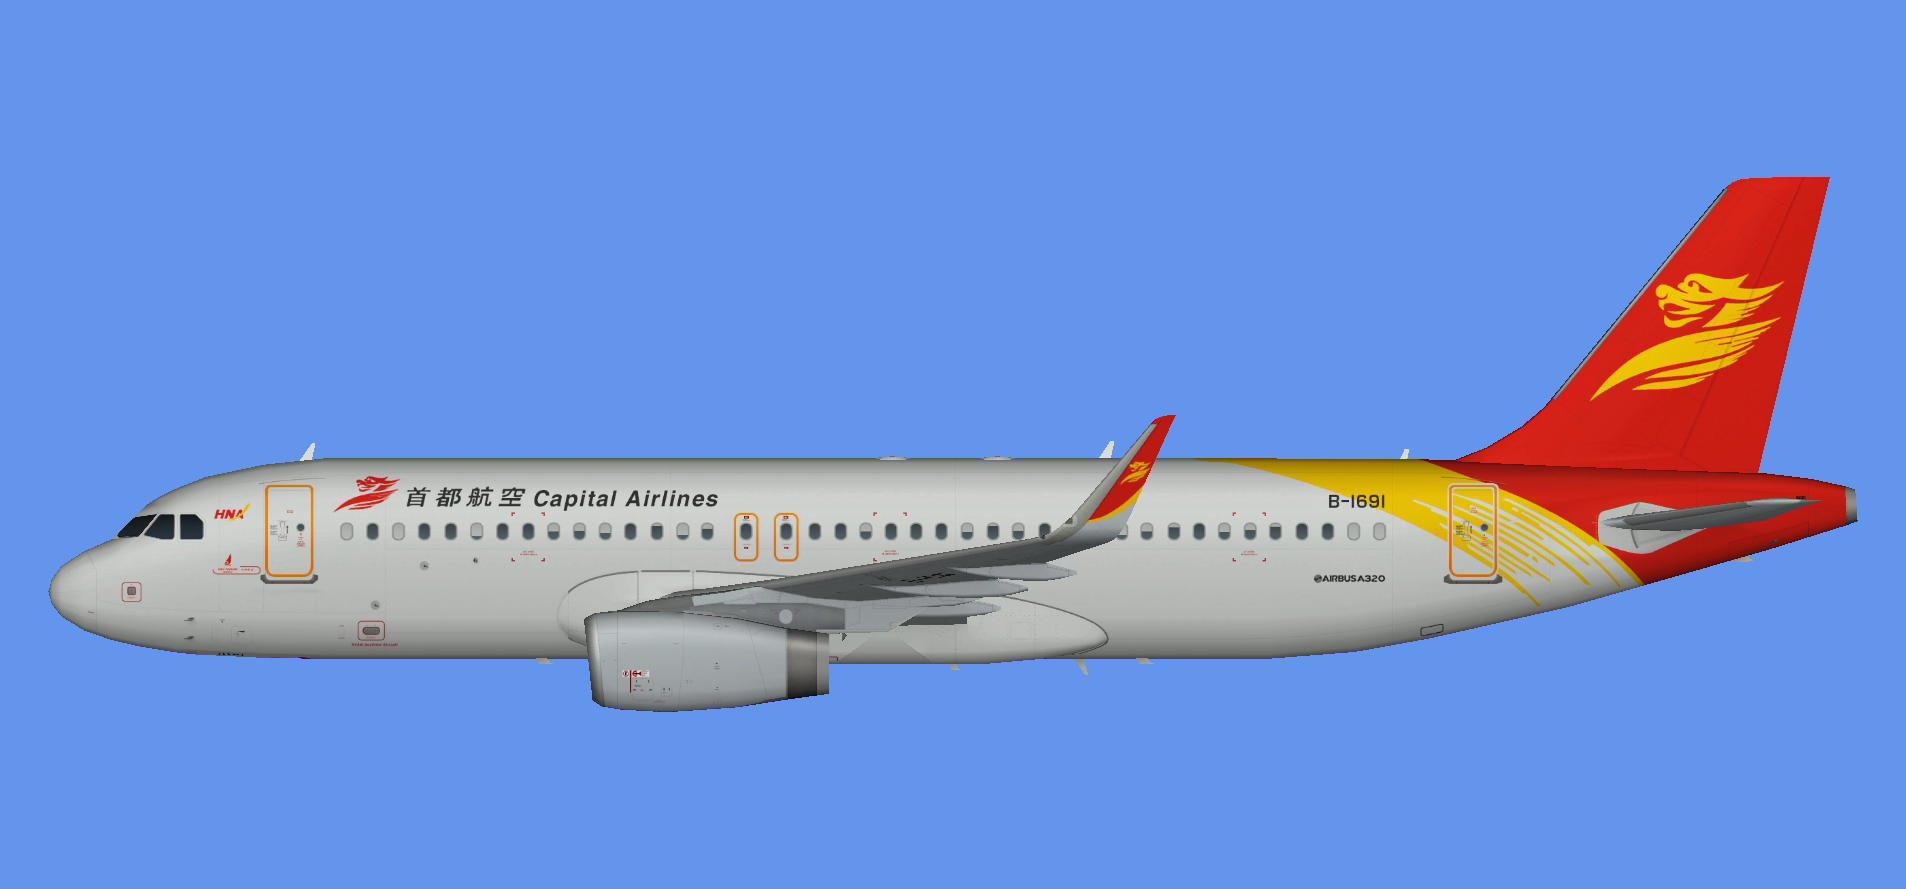 Capital Airlines Airbus A320 SL IAE